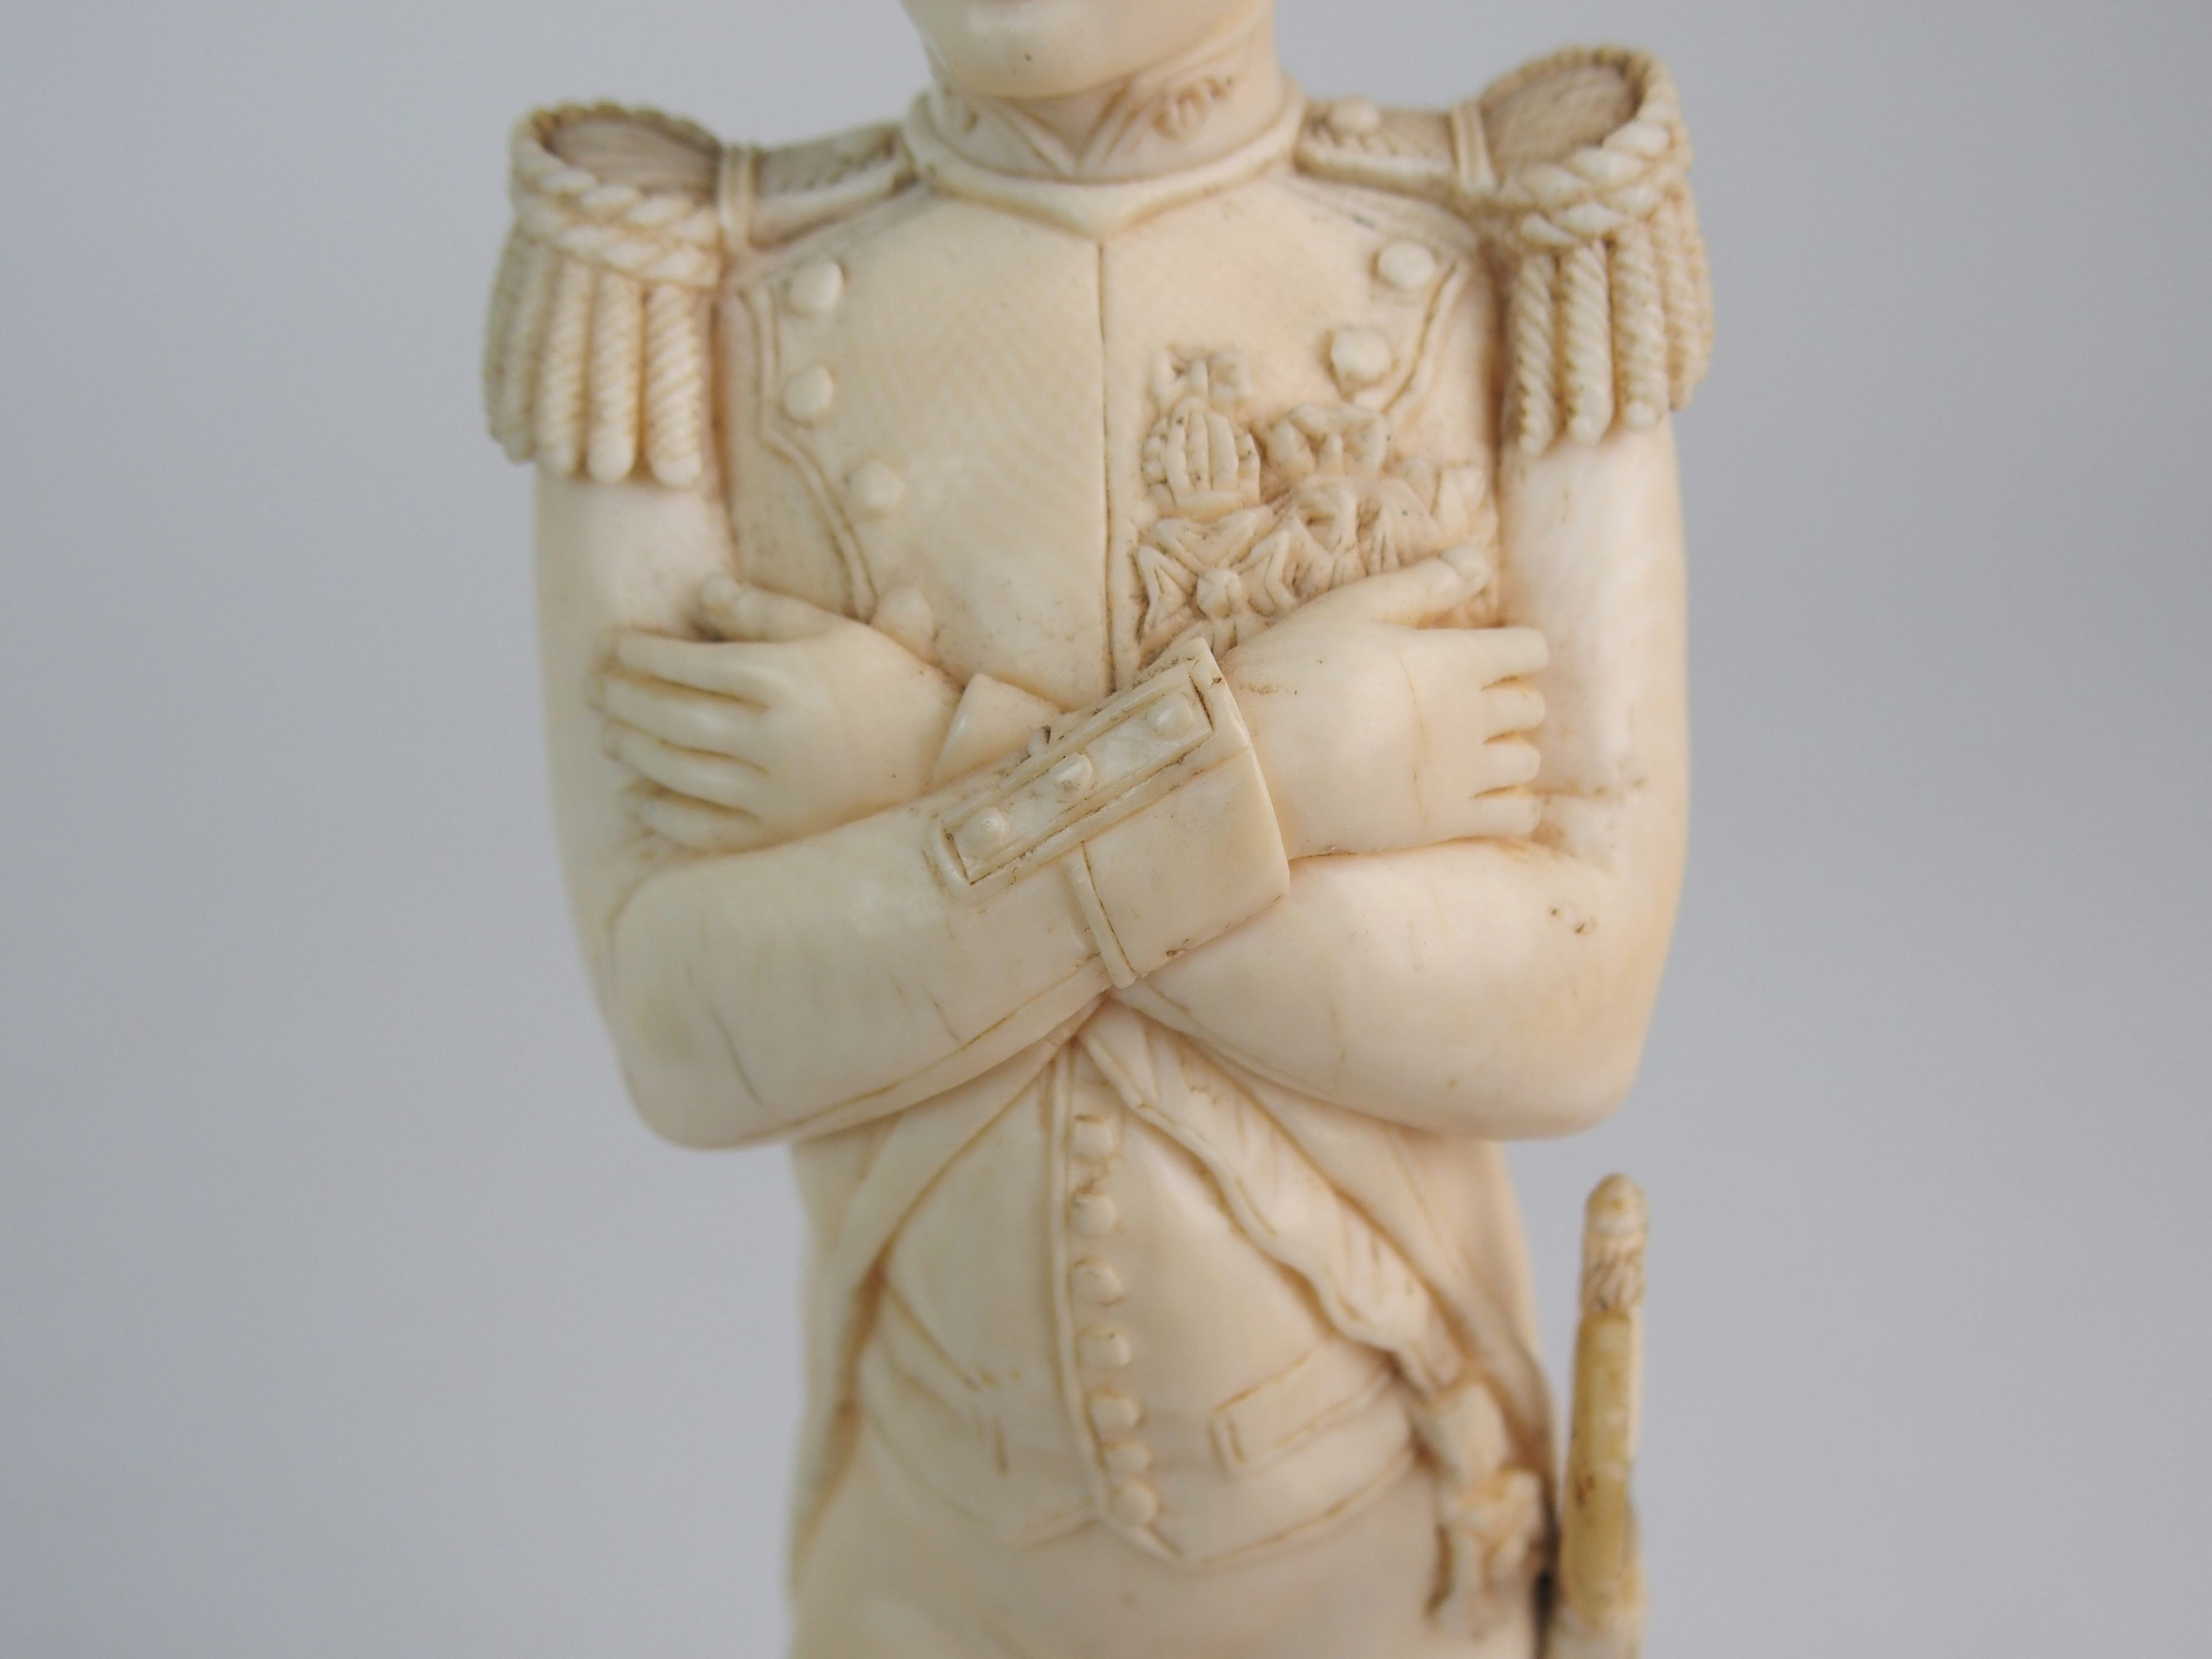 A LATE 19TH/EARLY 20TH CENTURY CARVED IVORY MODEL OF NAPOLEON in uniform with crossed arms, on - Image 4 of 9